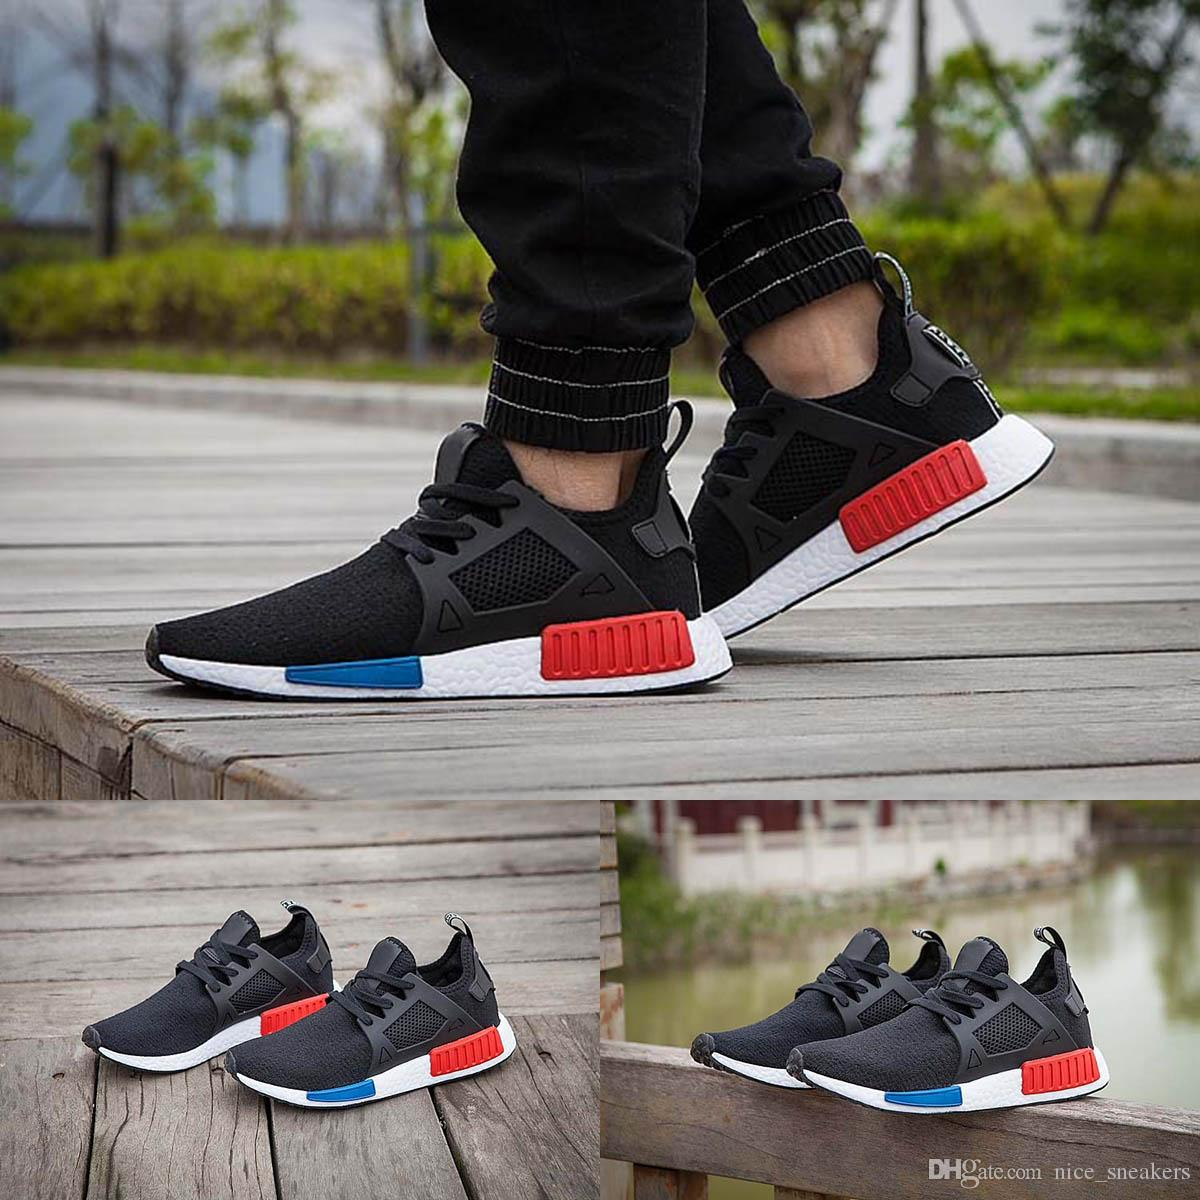 MEN'S ORIGINALS NMD XR1 PRIMEKNIT SHOES/nycsole